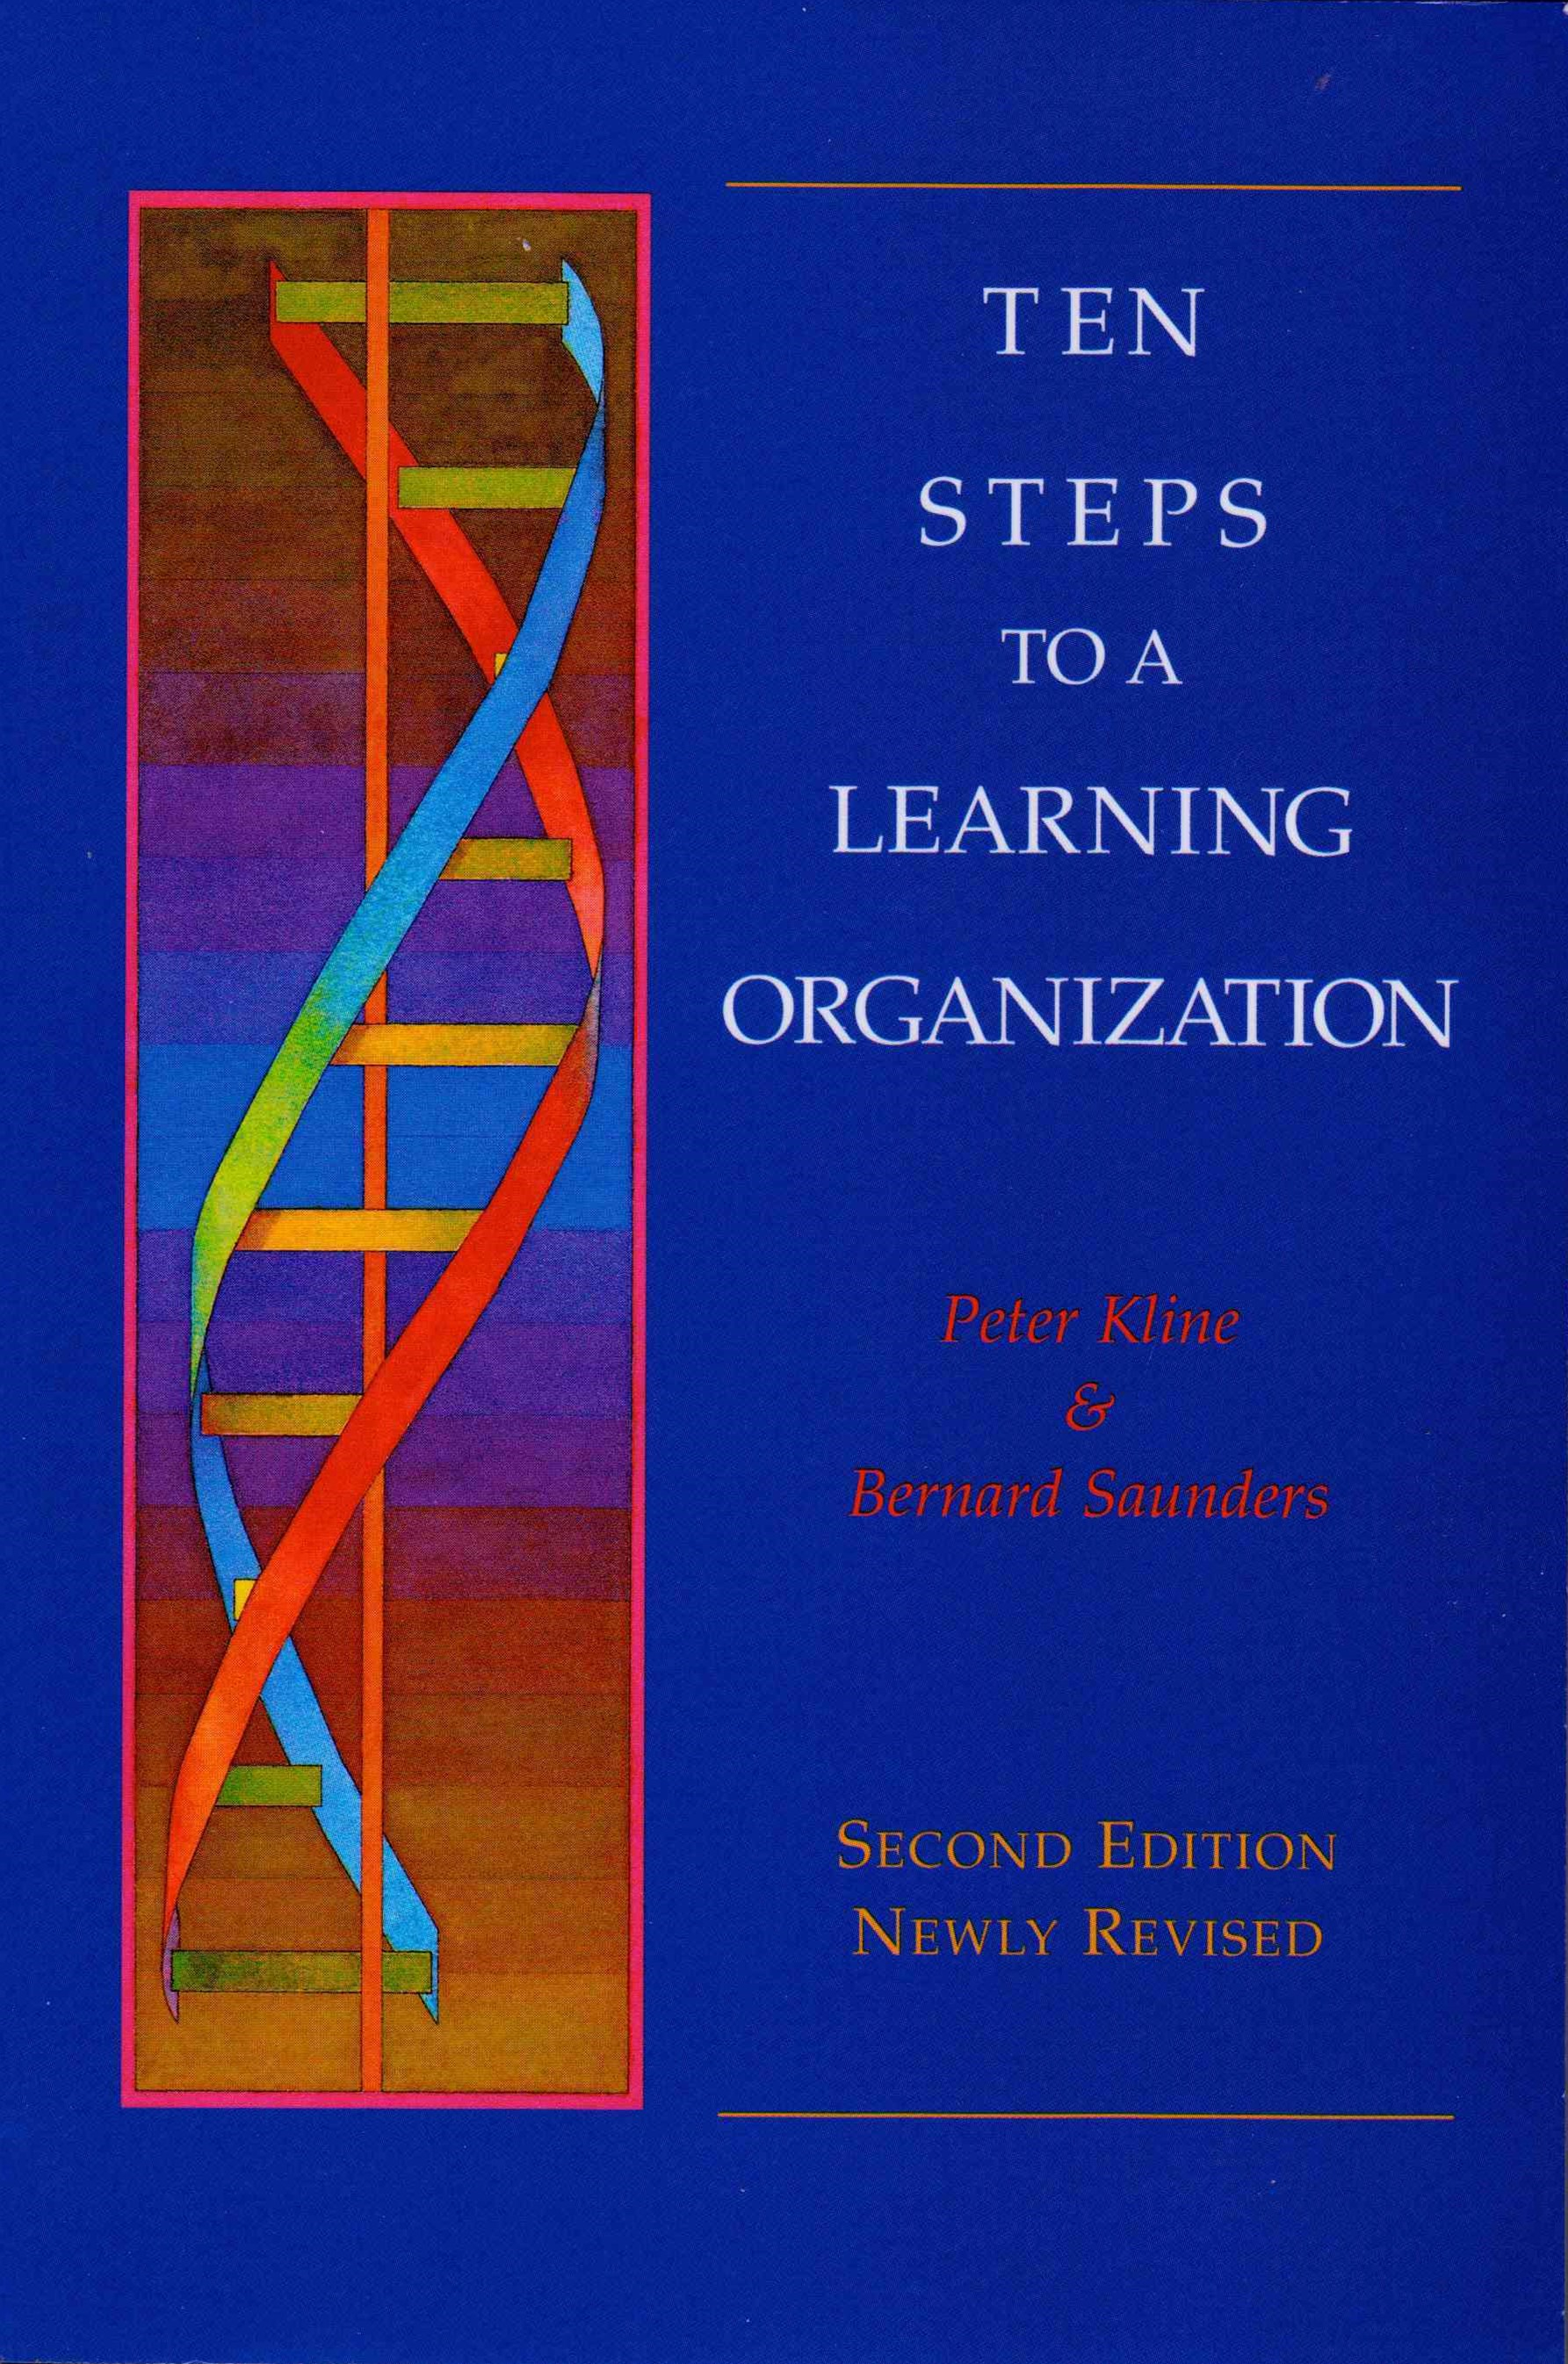 Ten Steps to a Learning Organization